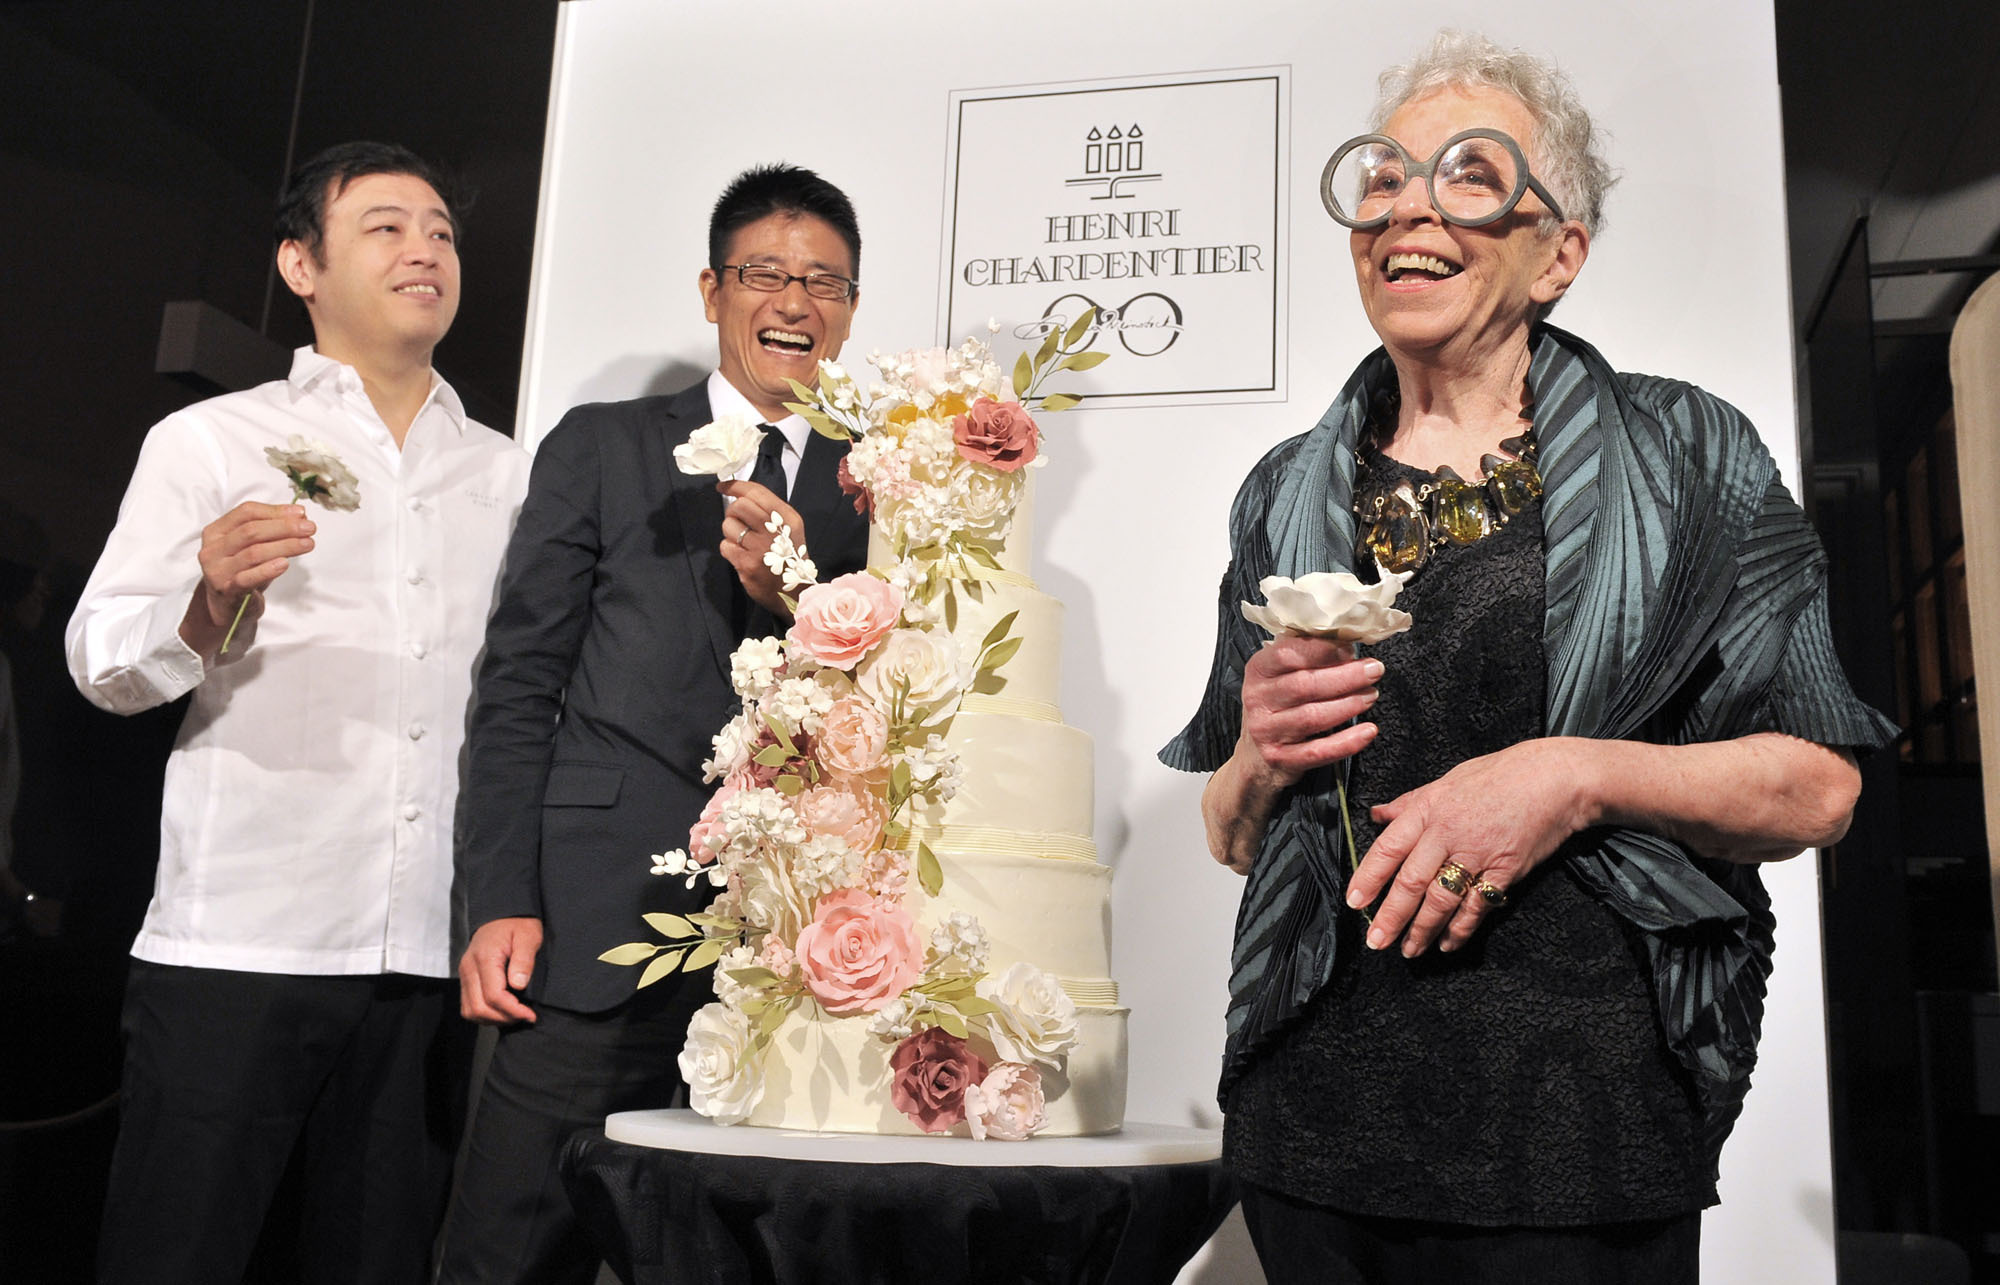 New York cake designer and pastry chef Sylvia Weinstock (right) poses with  Suzette Co. Ltd. President Goki Arita (center) and pastry chef Takahiro Komai at a press conference announcing the launch of a new brand, Henri & Sylvia, under Suzette's Henri Charpentier line, at Ginza Maison Henri Charpentier on Sept. 7. | YOSHIAKI MIURA